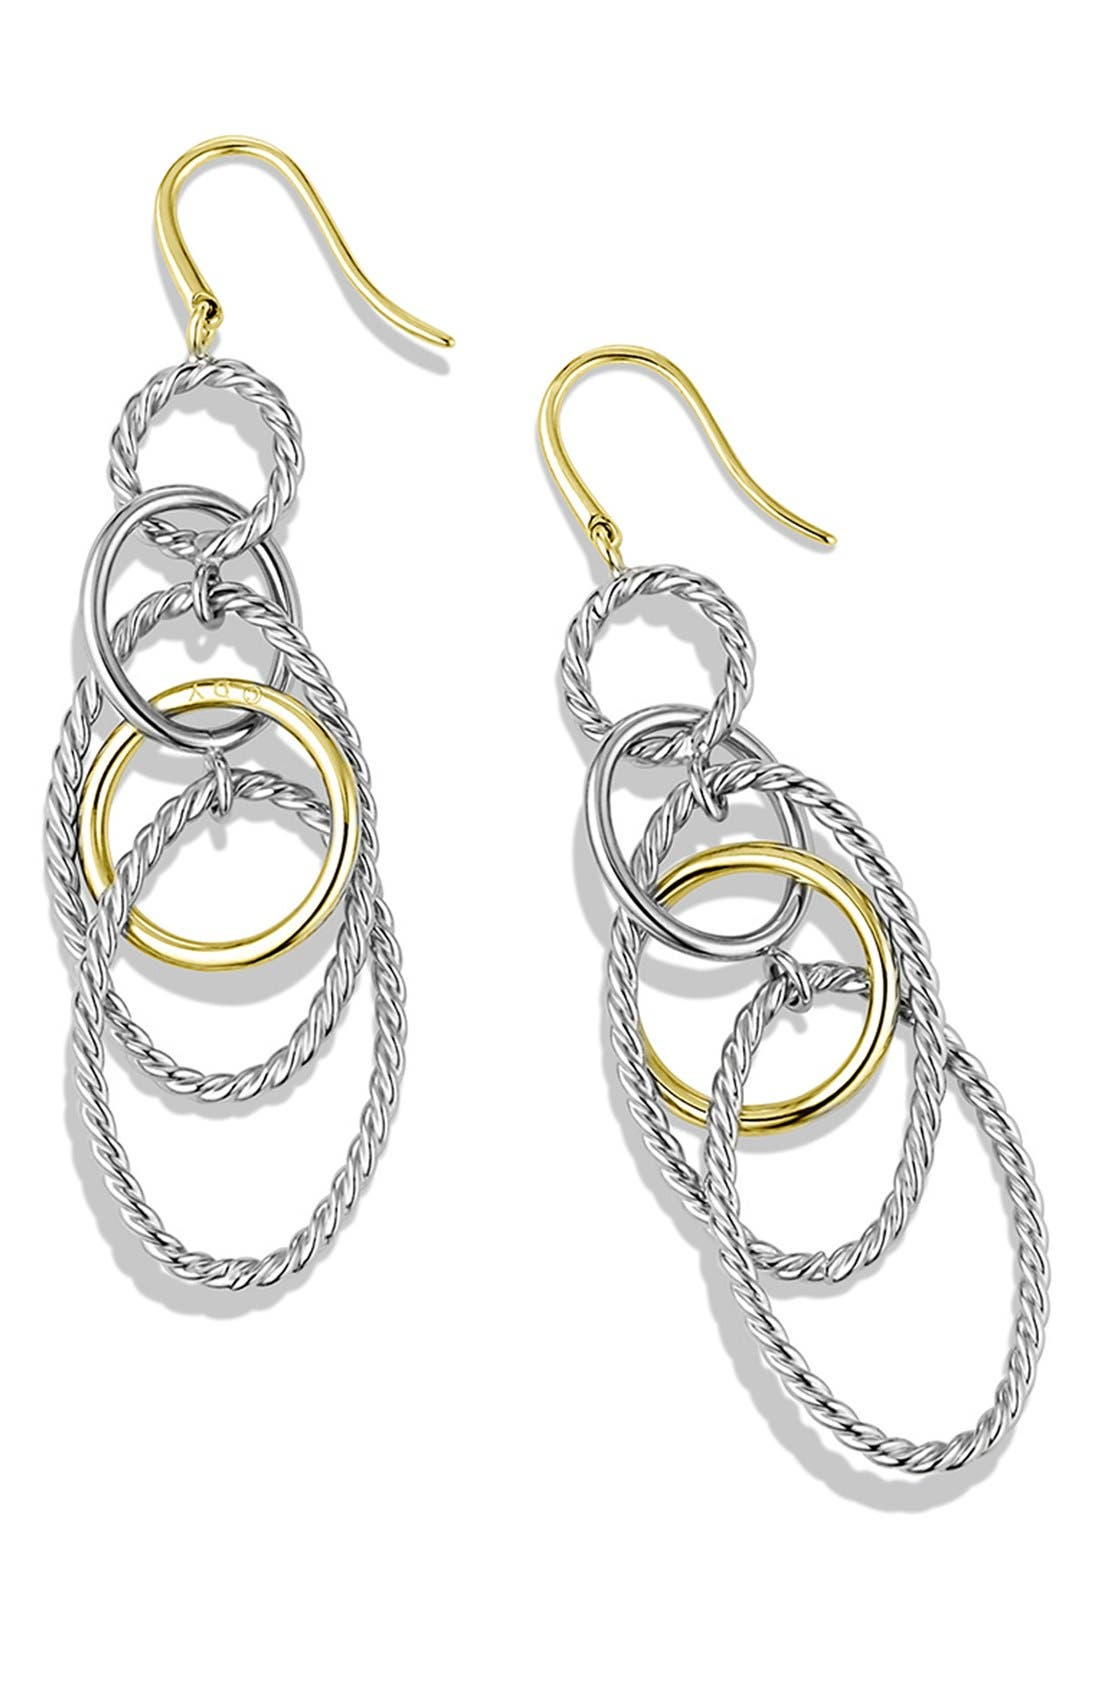 'Mobile' Large Link Earrings with Gold,                             Alternate thumbnail 2, color,                             040